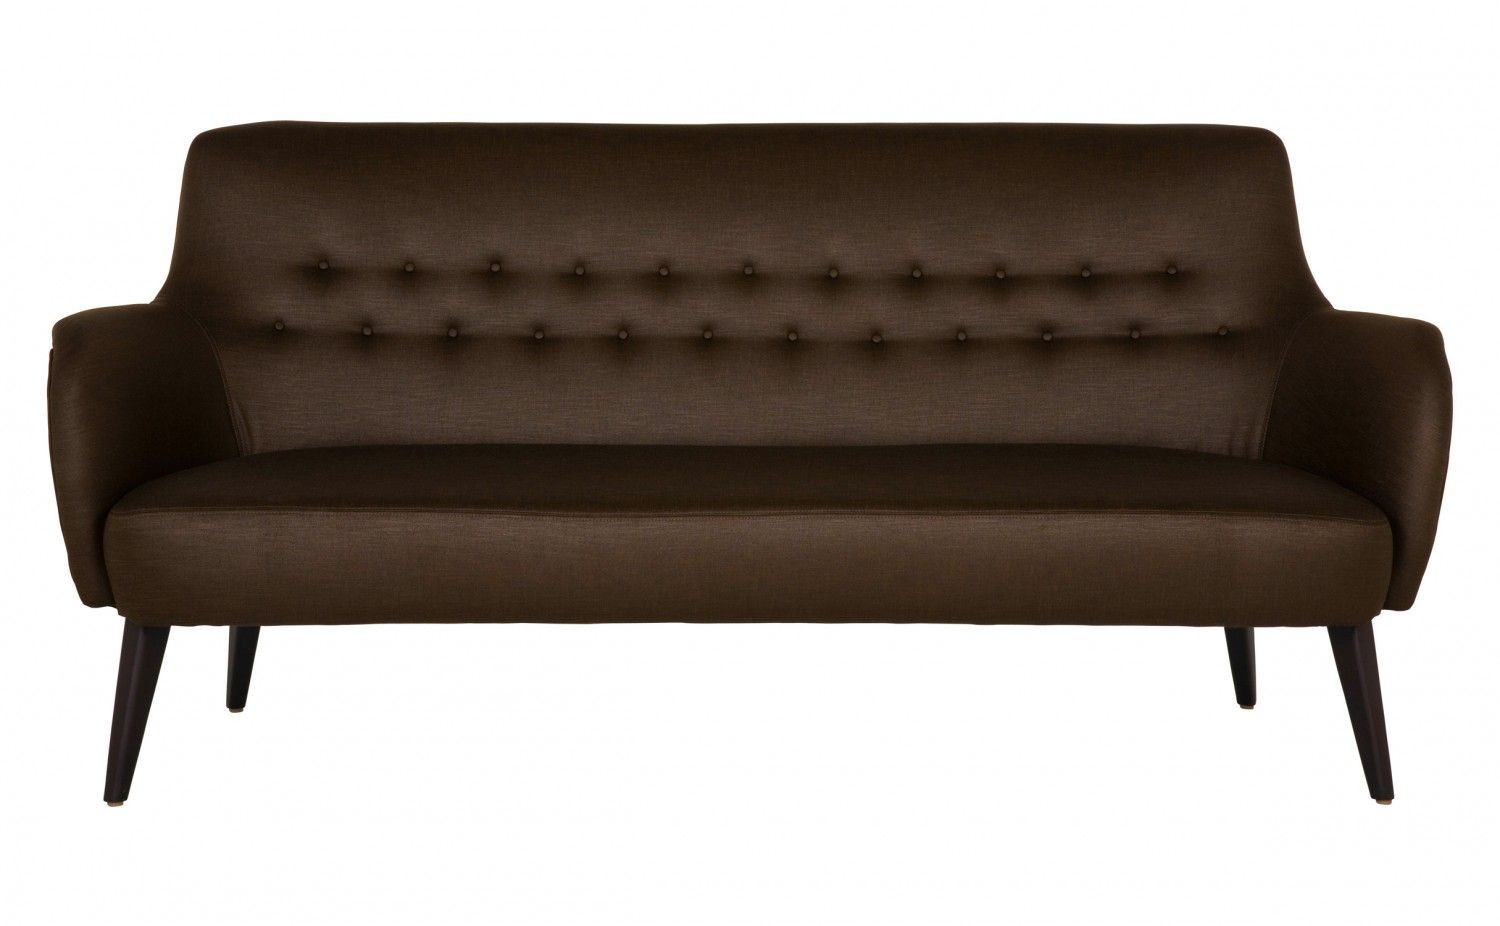 """•76""""W x 33""""D x 35""""H  •upholstered in salvador-chocolate woven  •black walnut wood finish  •sustainable construction"""